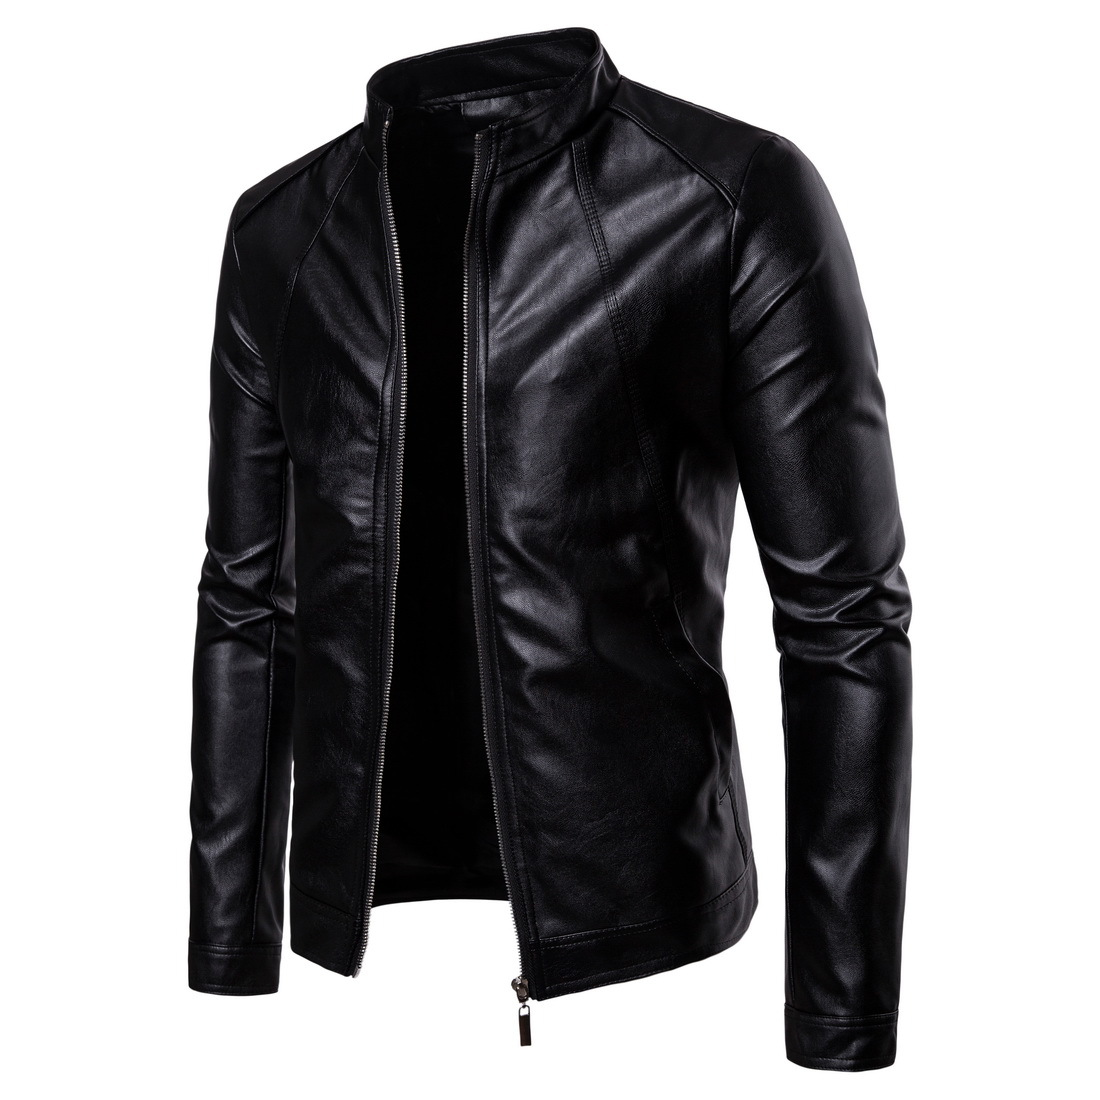 Mens Biker Moto Jacket Stand Collar Motorcycle Faux Leather Casual Jackets Fashion Male Black PU Coat Long Sleeve Large Size 5xl